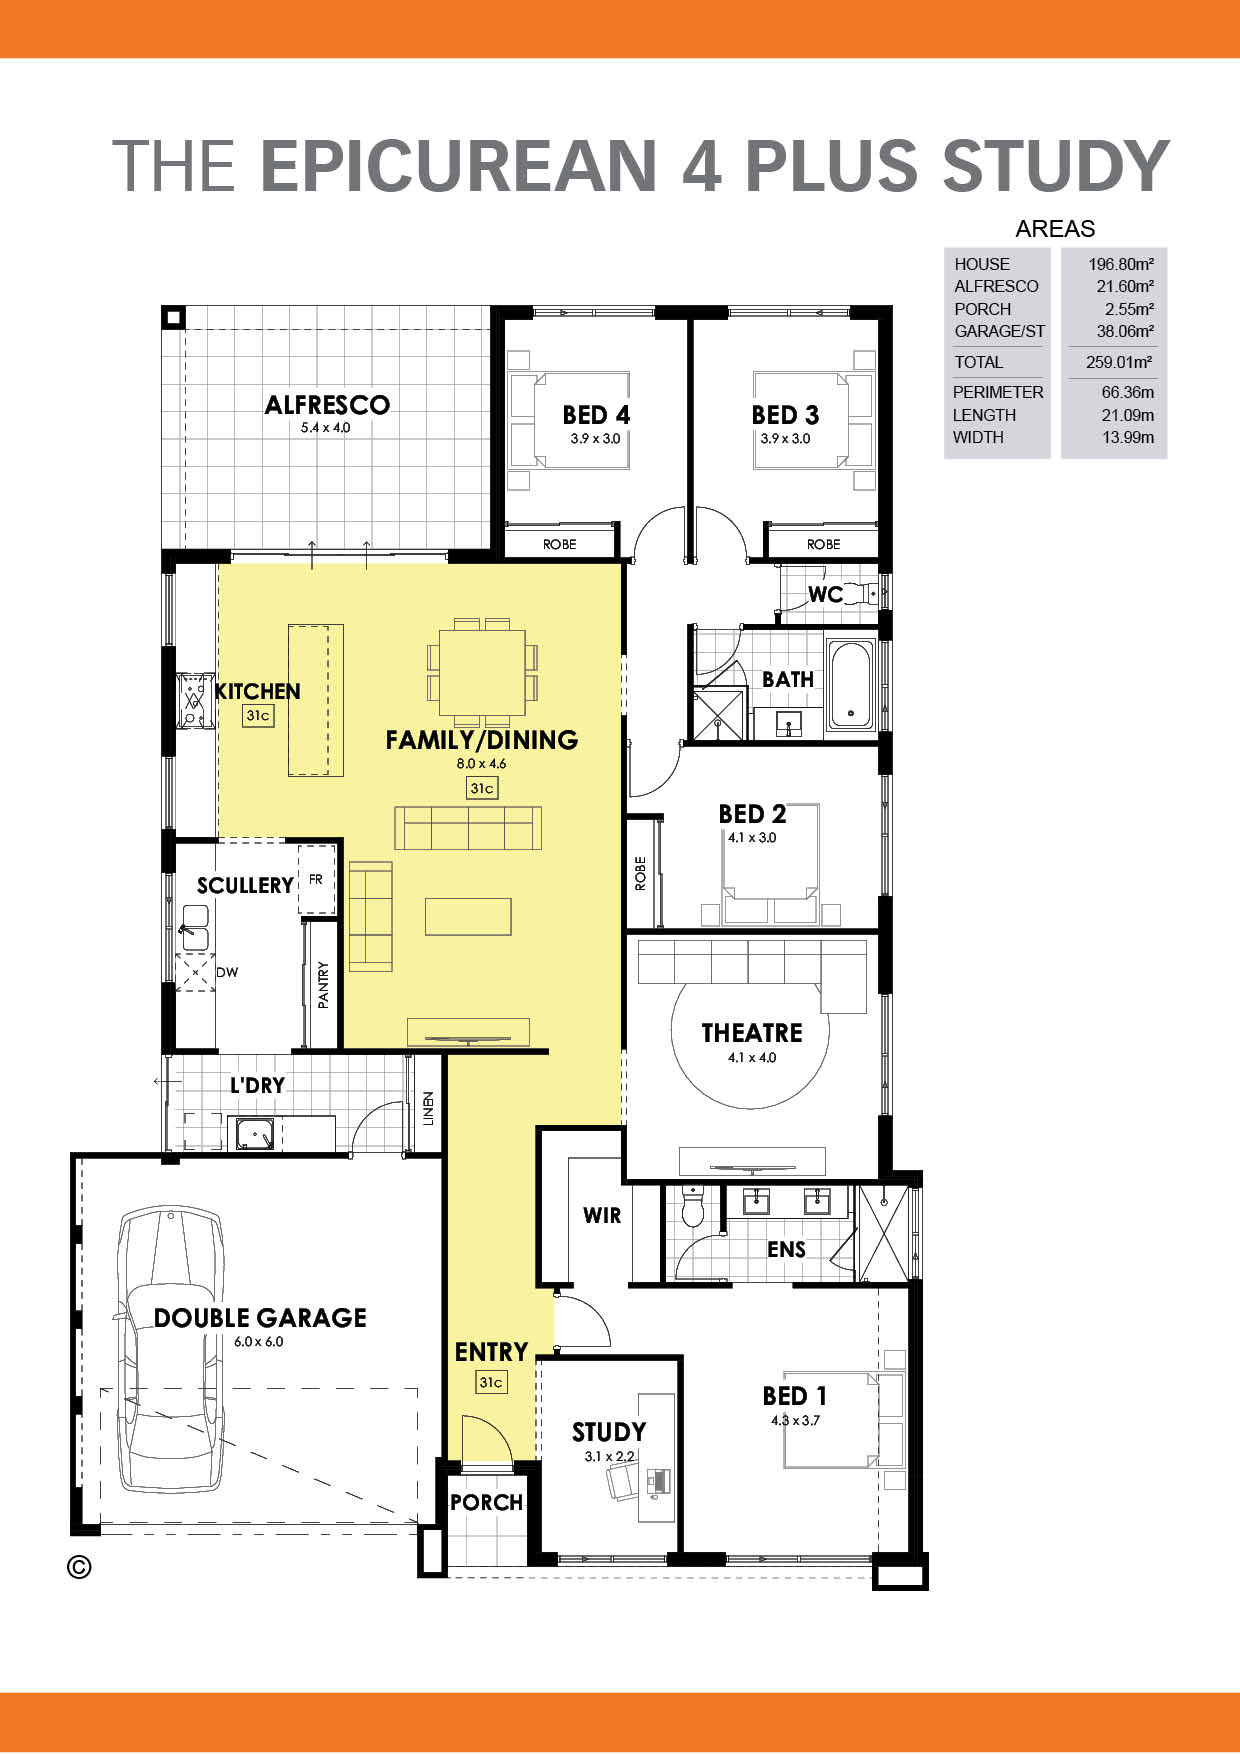 The Epicurean 4 + Study Floorplan